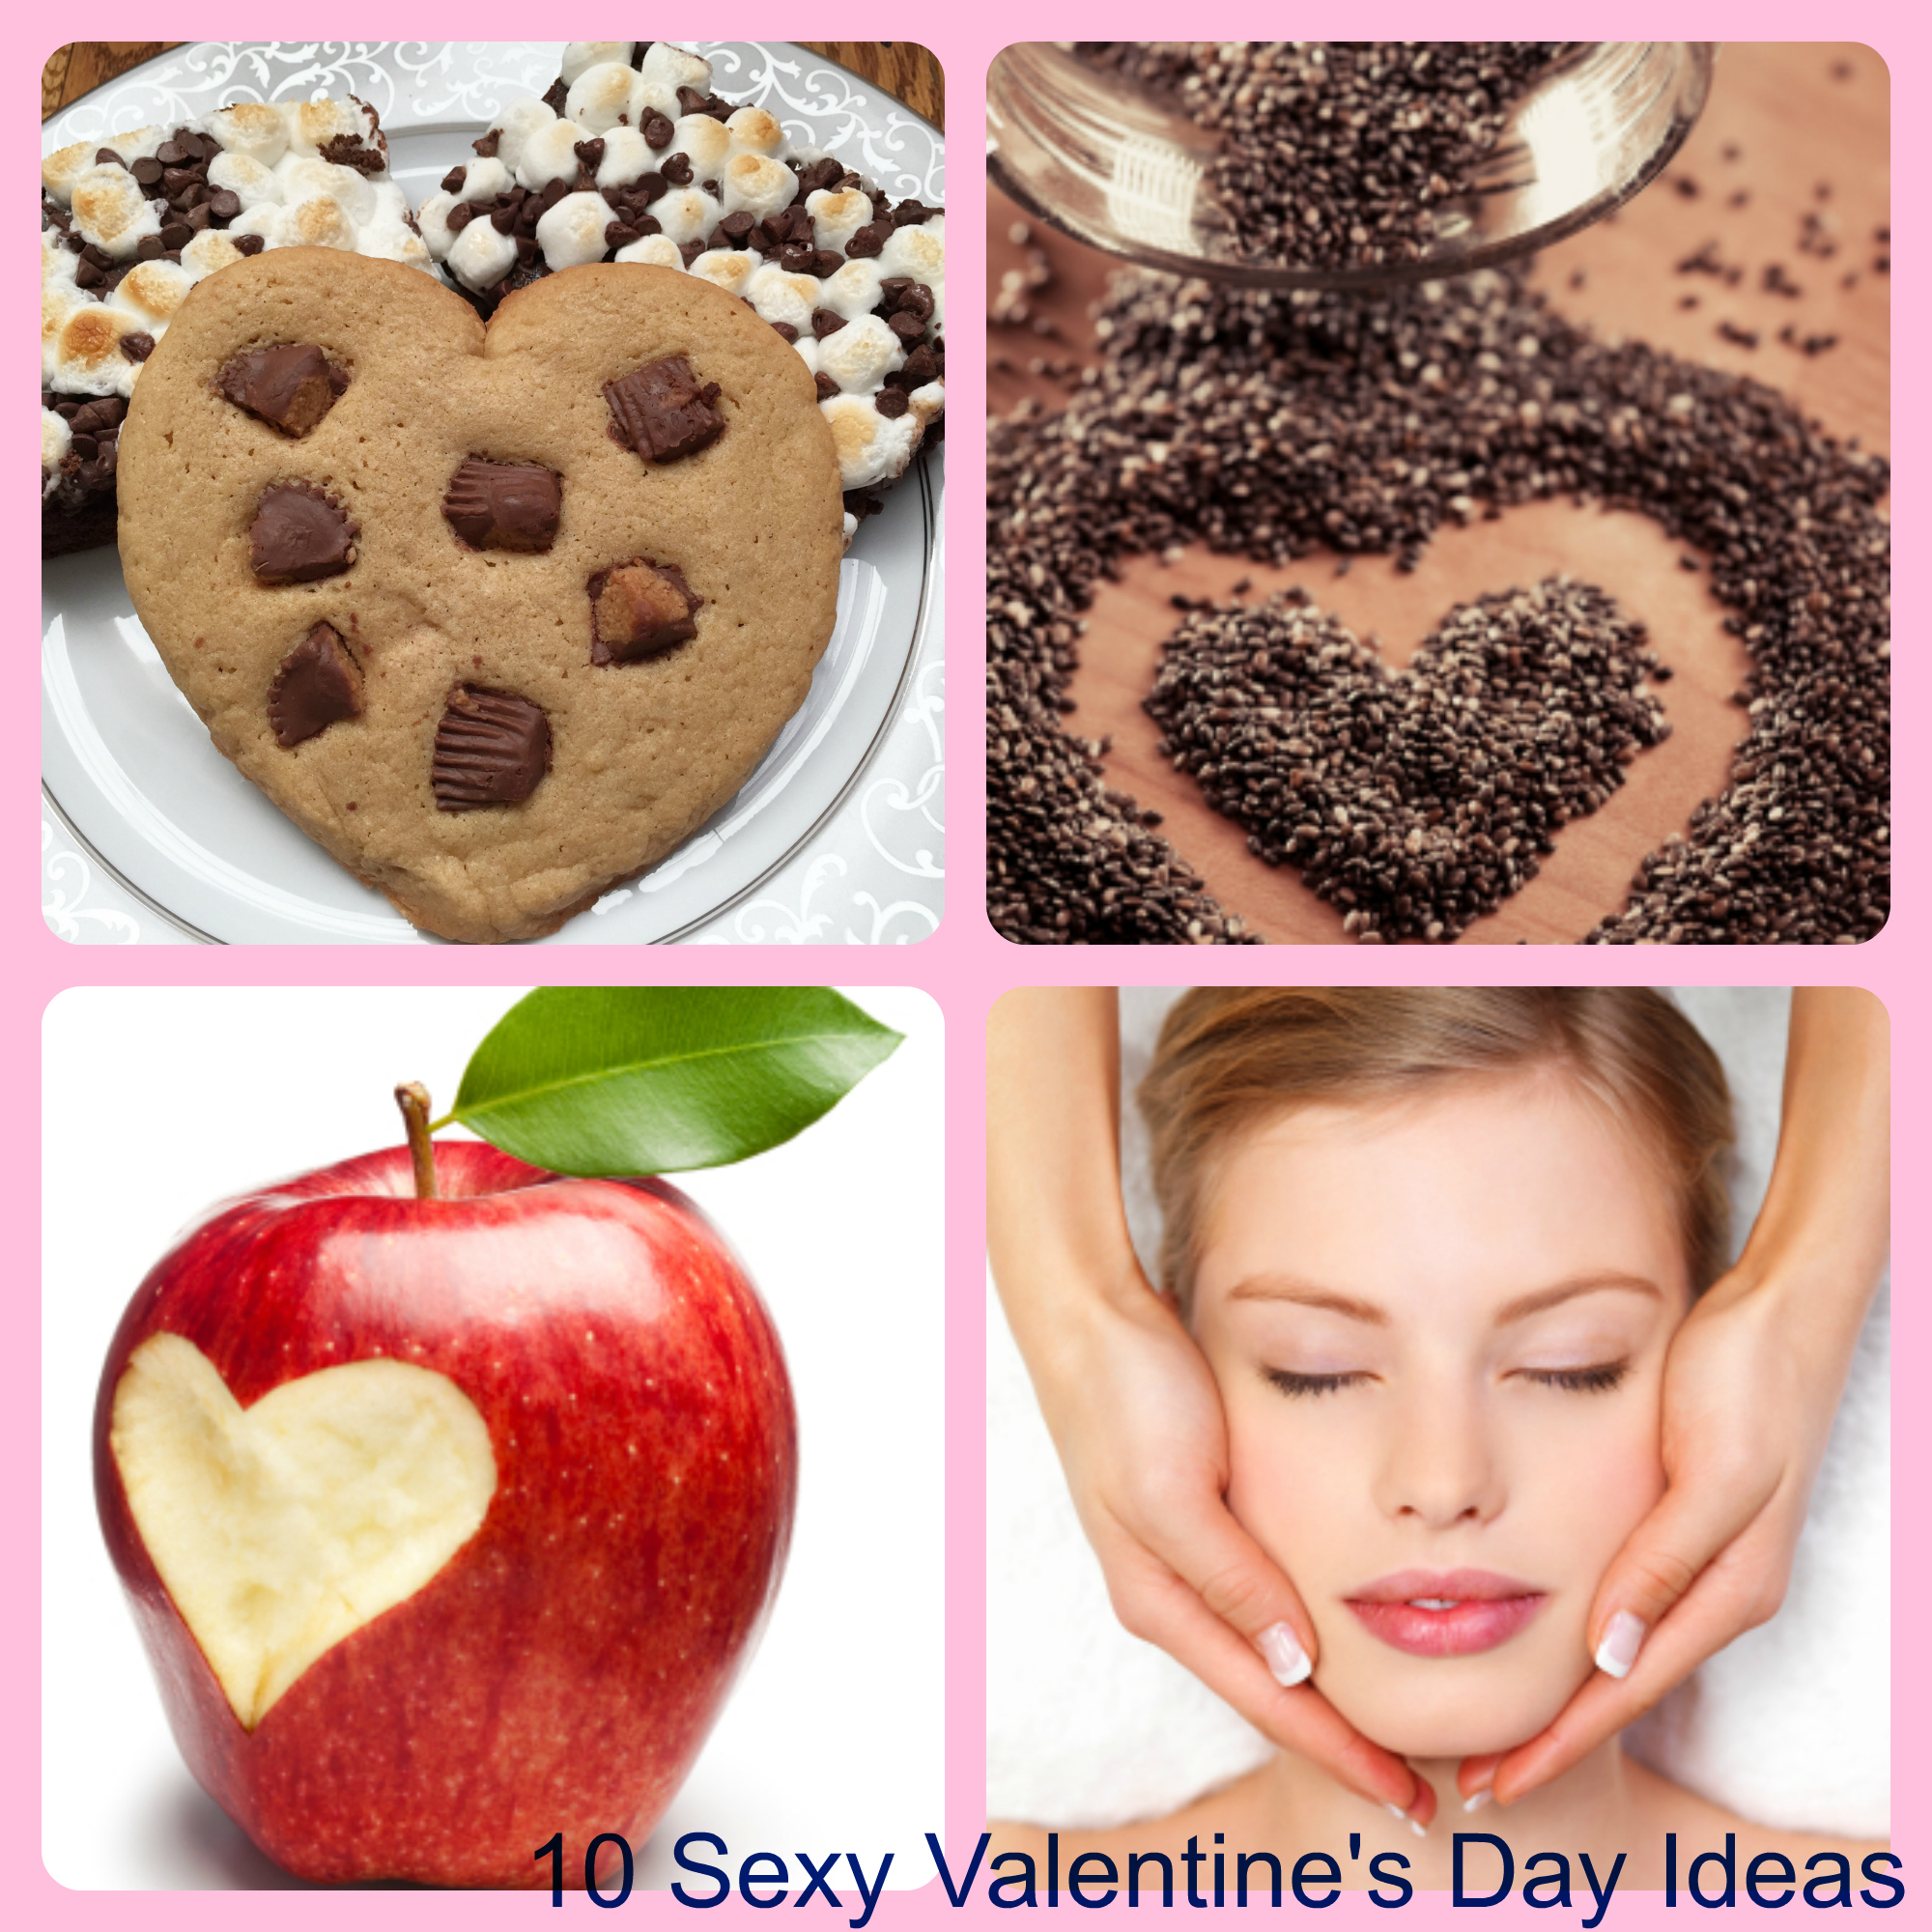 10 Sexy Valentine's Day Ideas To Make Your Partner Melt